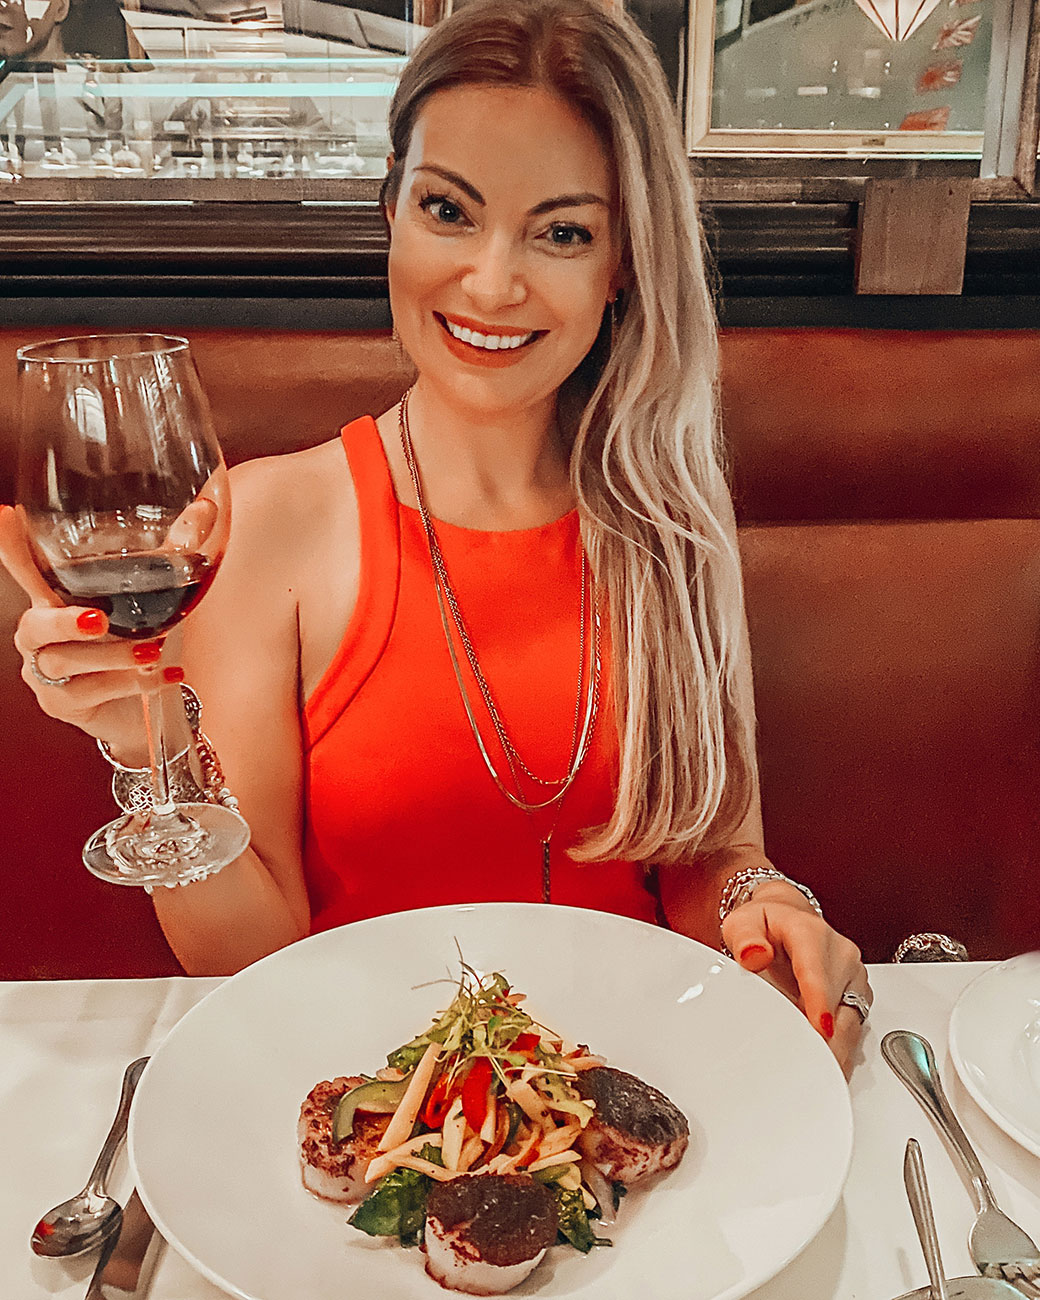 Chicago staycation   Staycation in Chicago   Chicago staycation ideas   Staycation near Chicago   Rosemont staycation   Rosemont restaurants   Rosemont mall   Hotels by Rosemont   Travel Chicago   Bubbly Moments